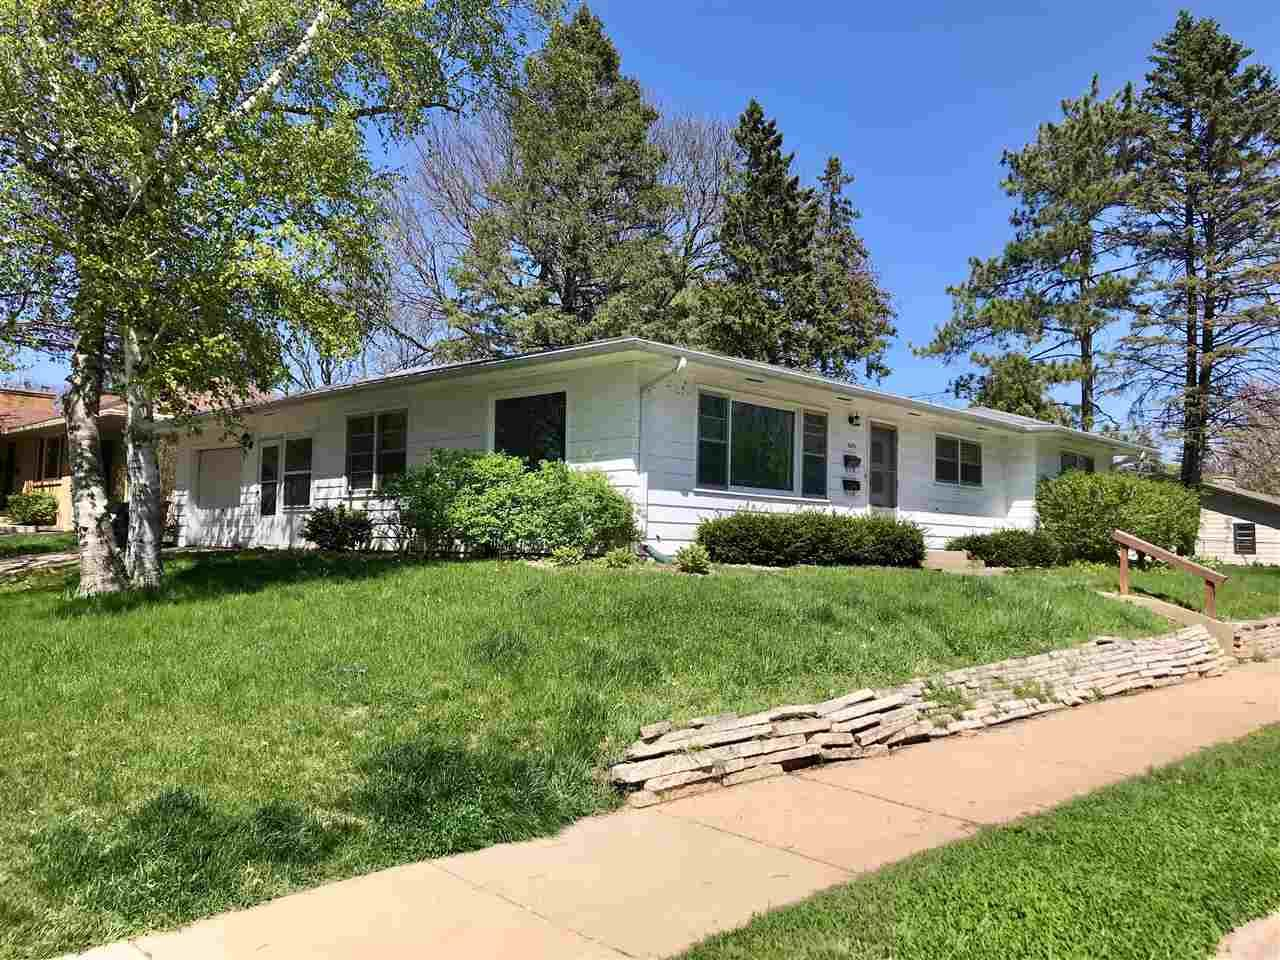 4830 Tokay Blvd, Madison, WI 53711 - #: 1883014